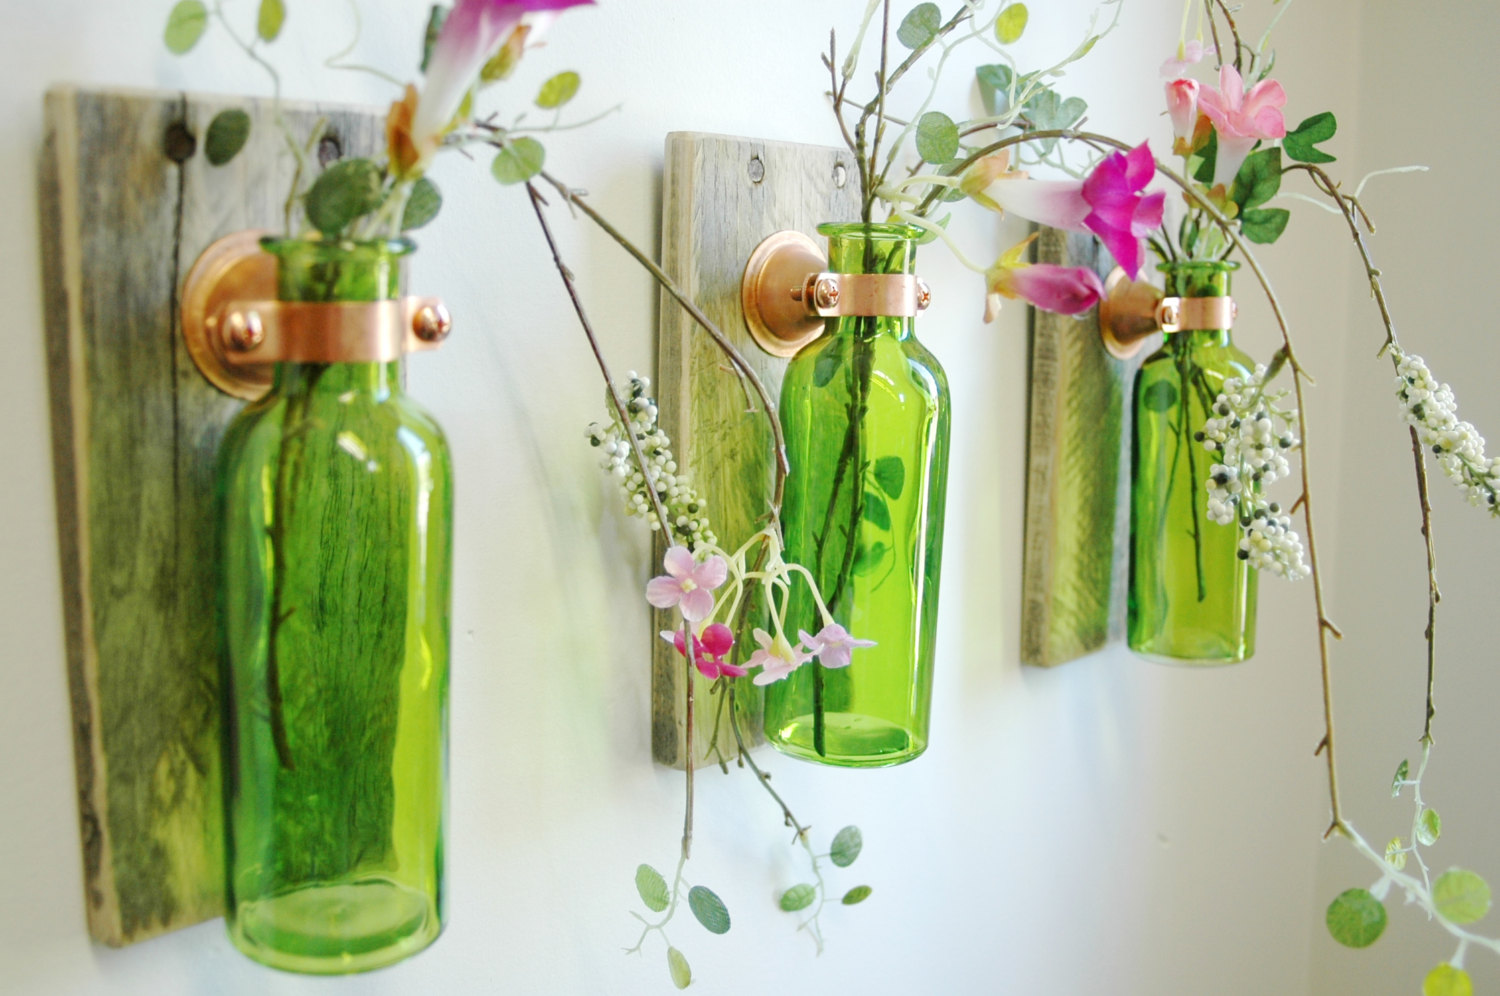 Wall decoration with green bottles